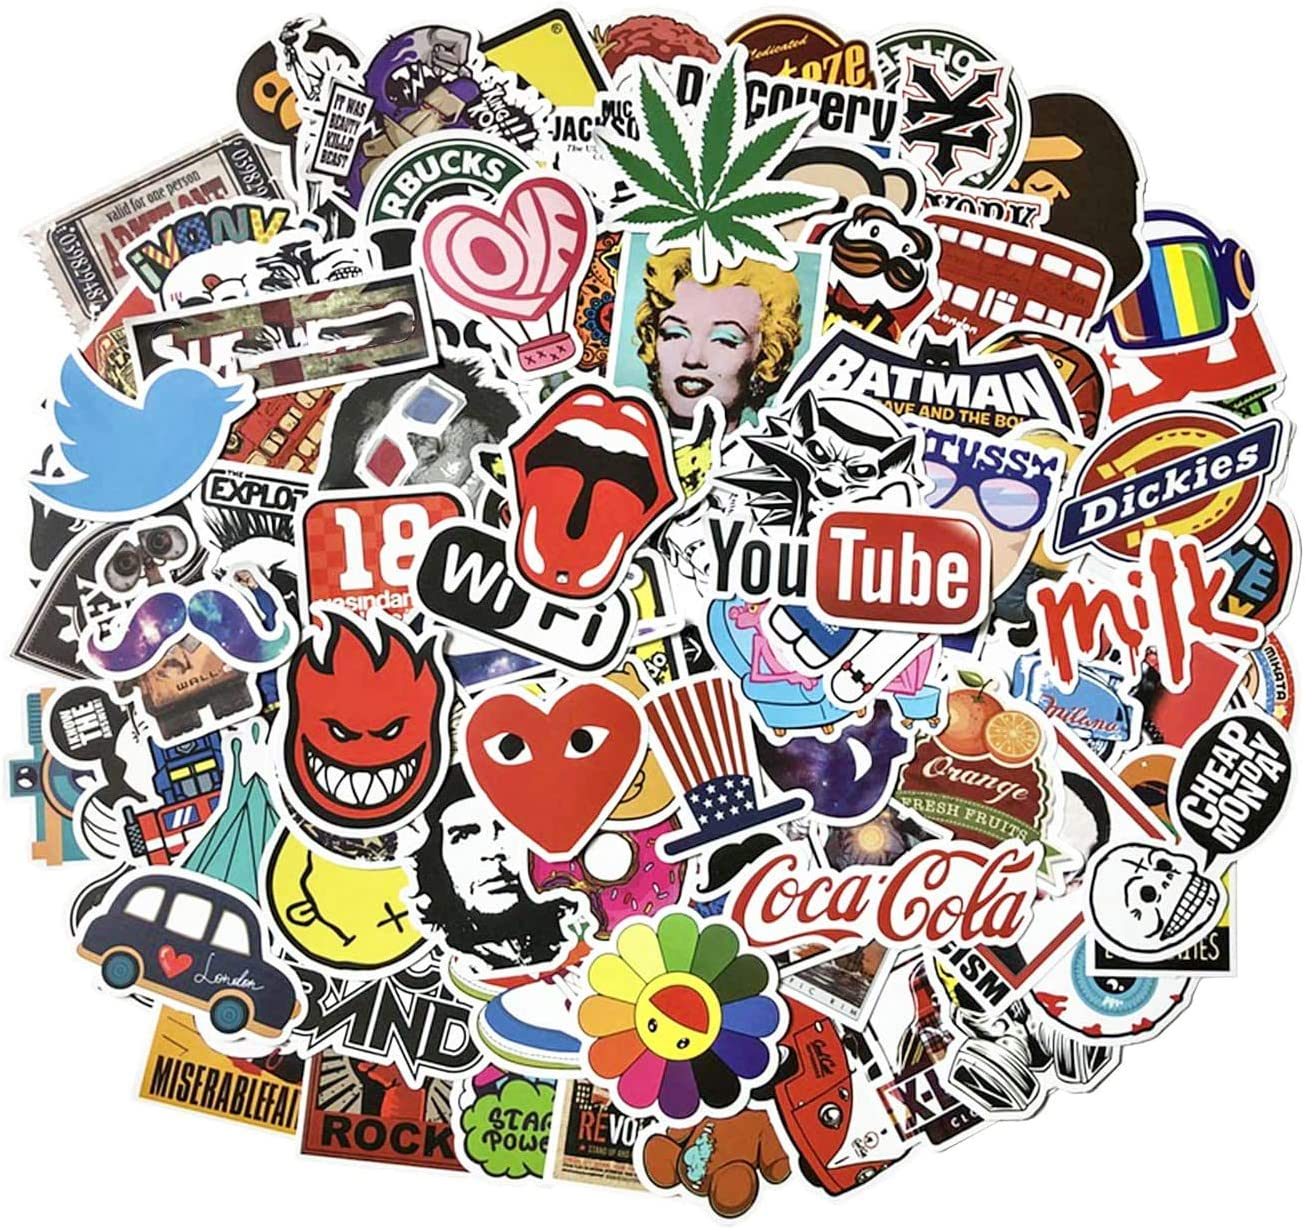 Cool Stickers Pack, 100 Pcs Vinyl Waterproof Stickers for Laptop, Luggage, Skateboard, Car, Motorcycle, Bicycle Decal Graffiti Patches (Stickers - A)